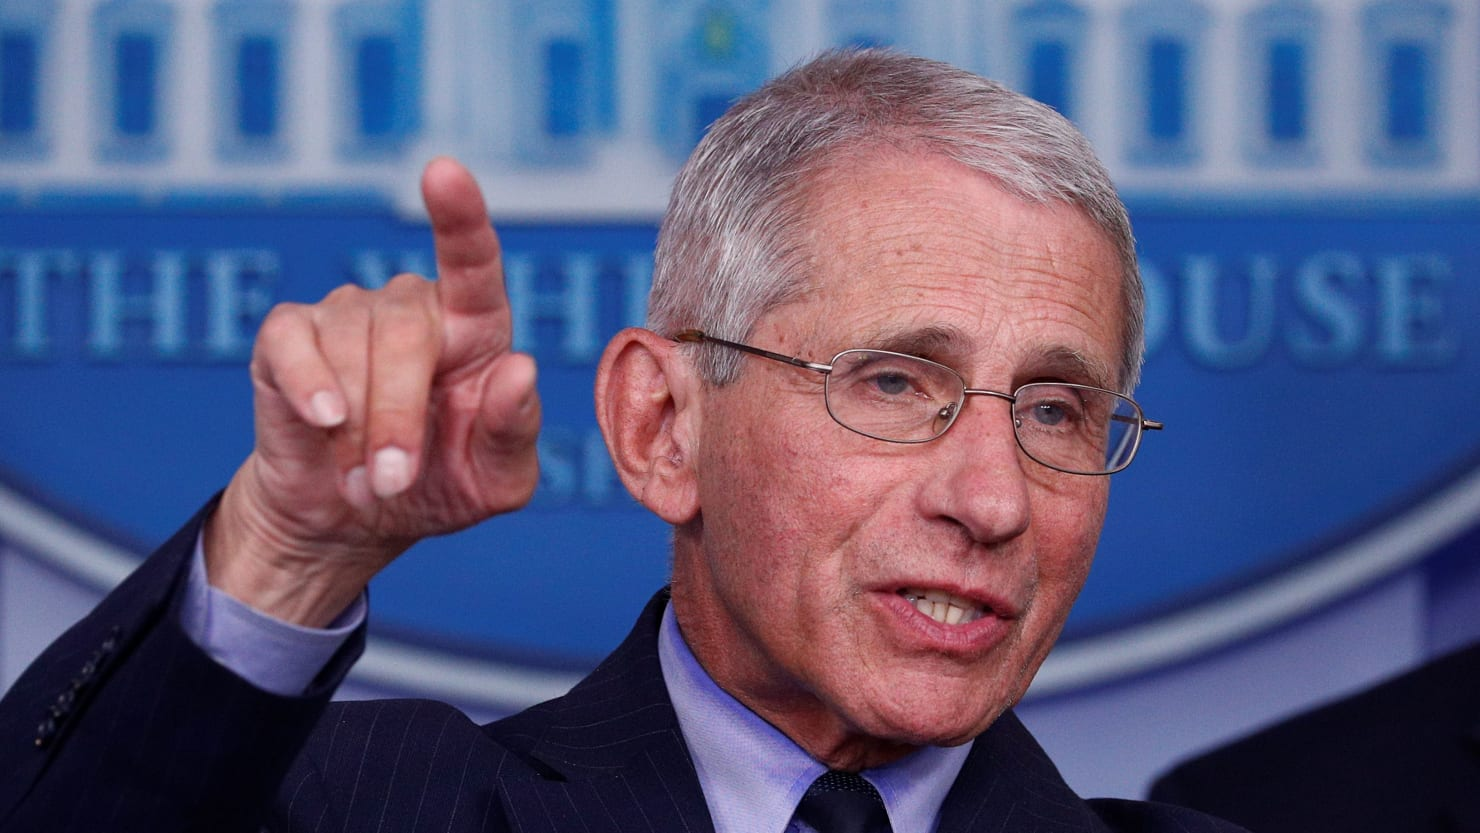 Fauci Urges All States to Issue Strict Stay at Home Orders